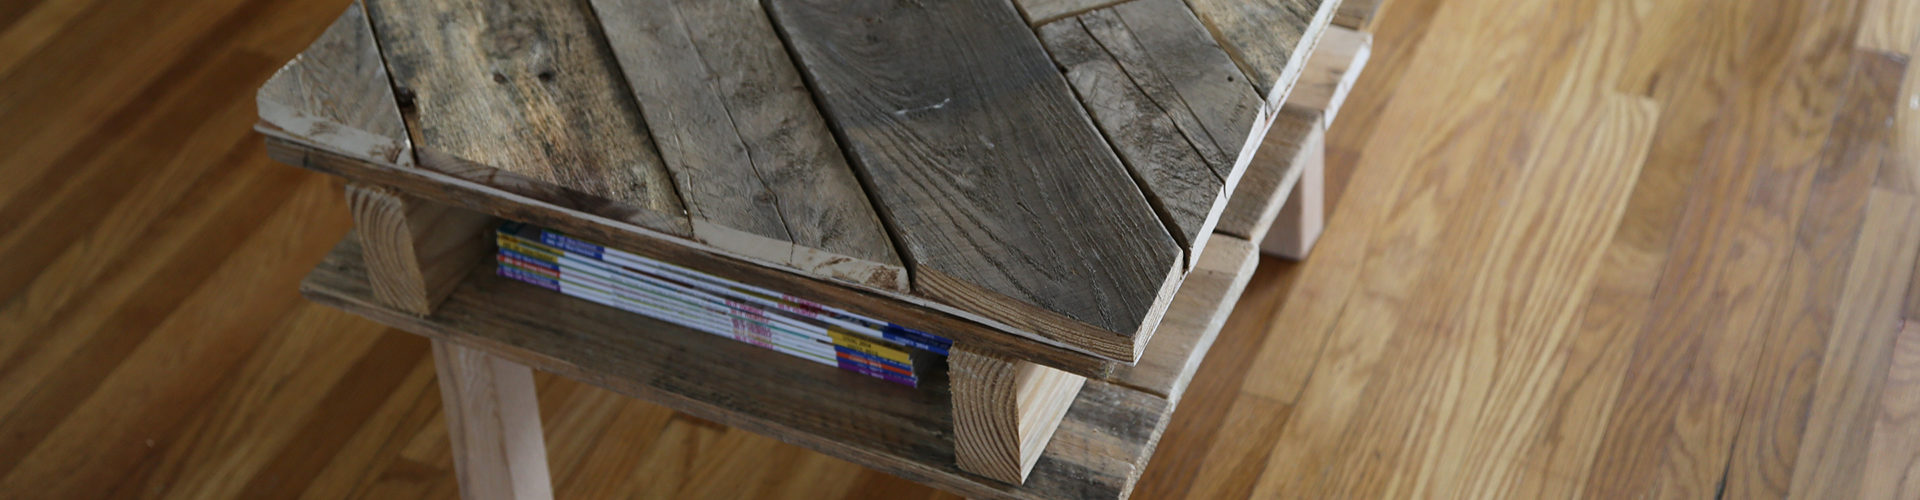 Diy simple coffee table learn how - Diy Pallet Coffee Table